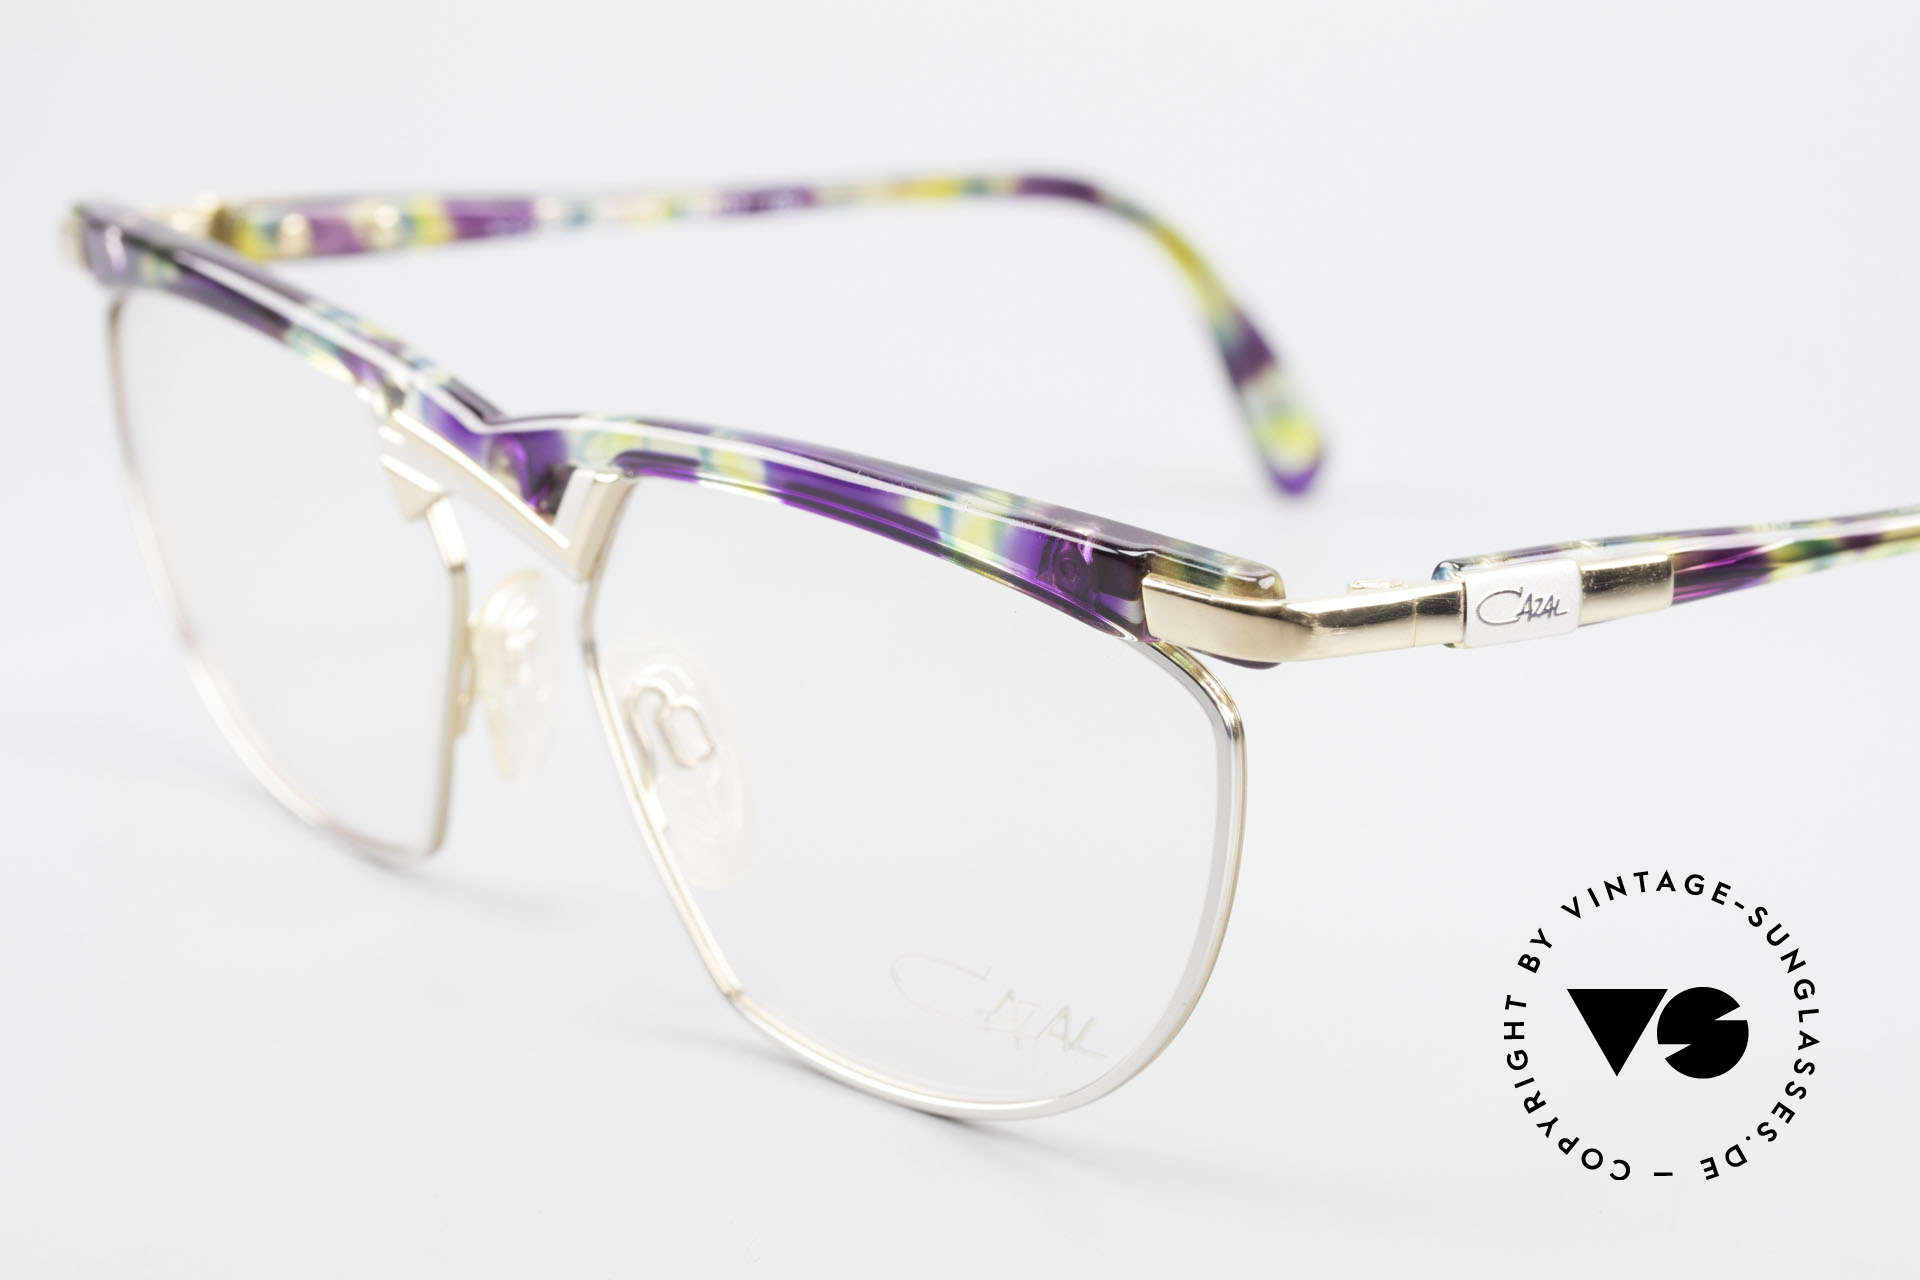 Cazal 252 90's Original True Vintage, never worn (like all our unique vintage CAZAL rarities), Made for Men and Women